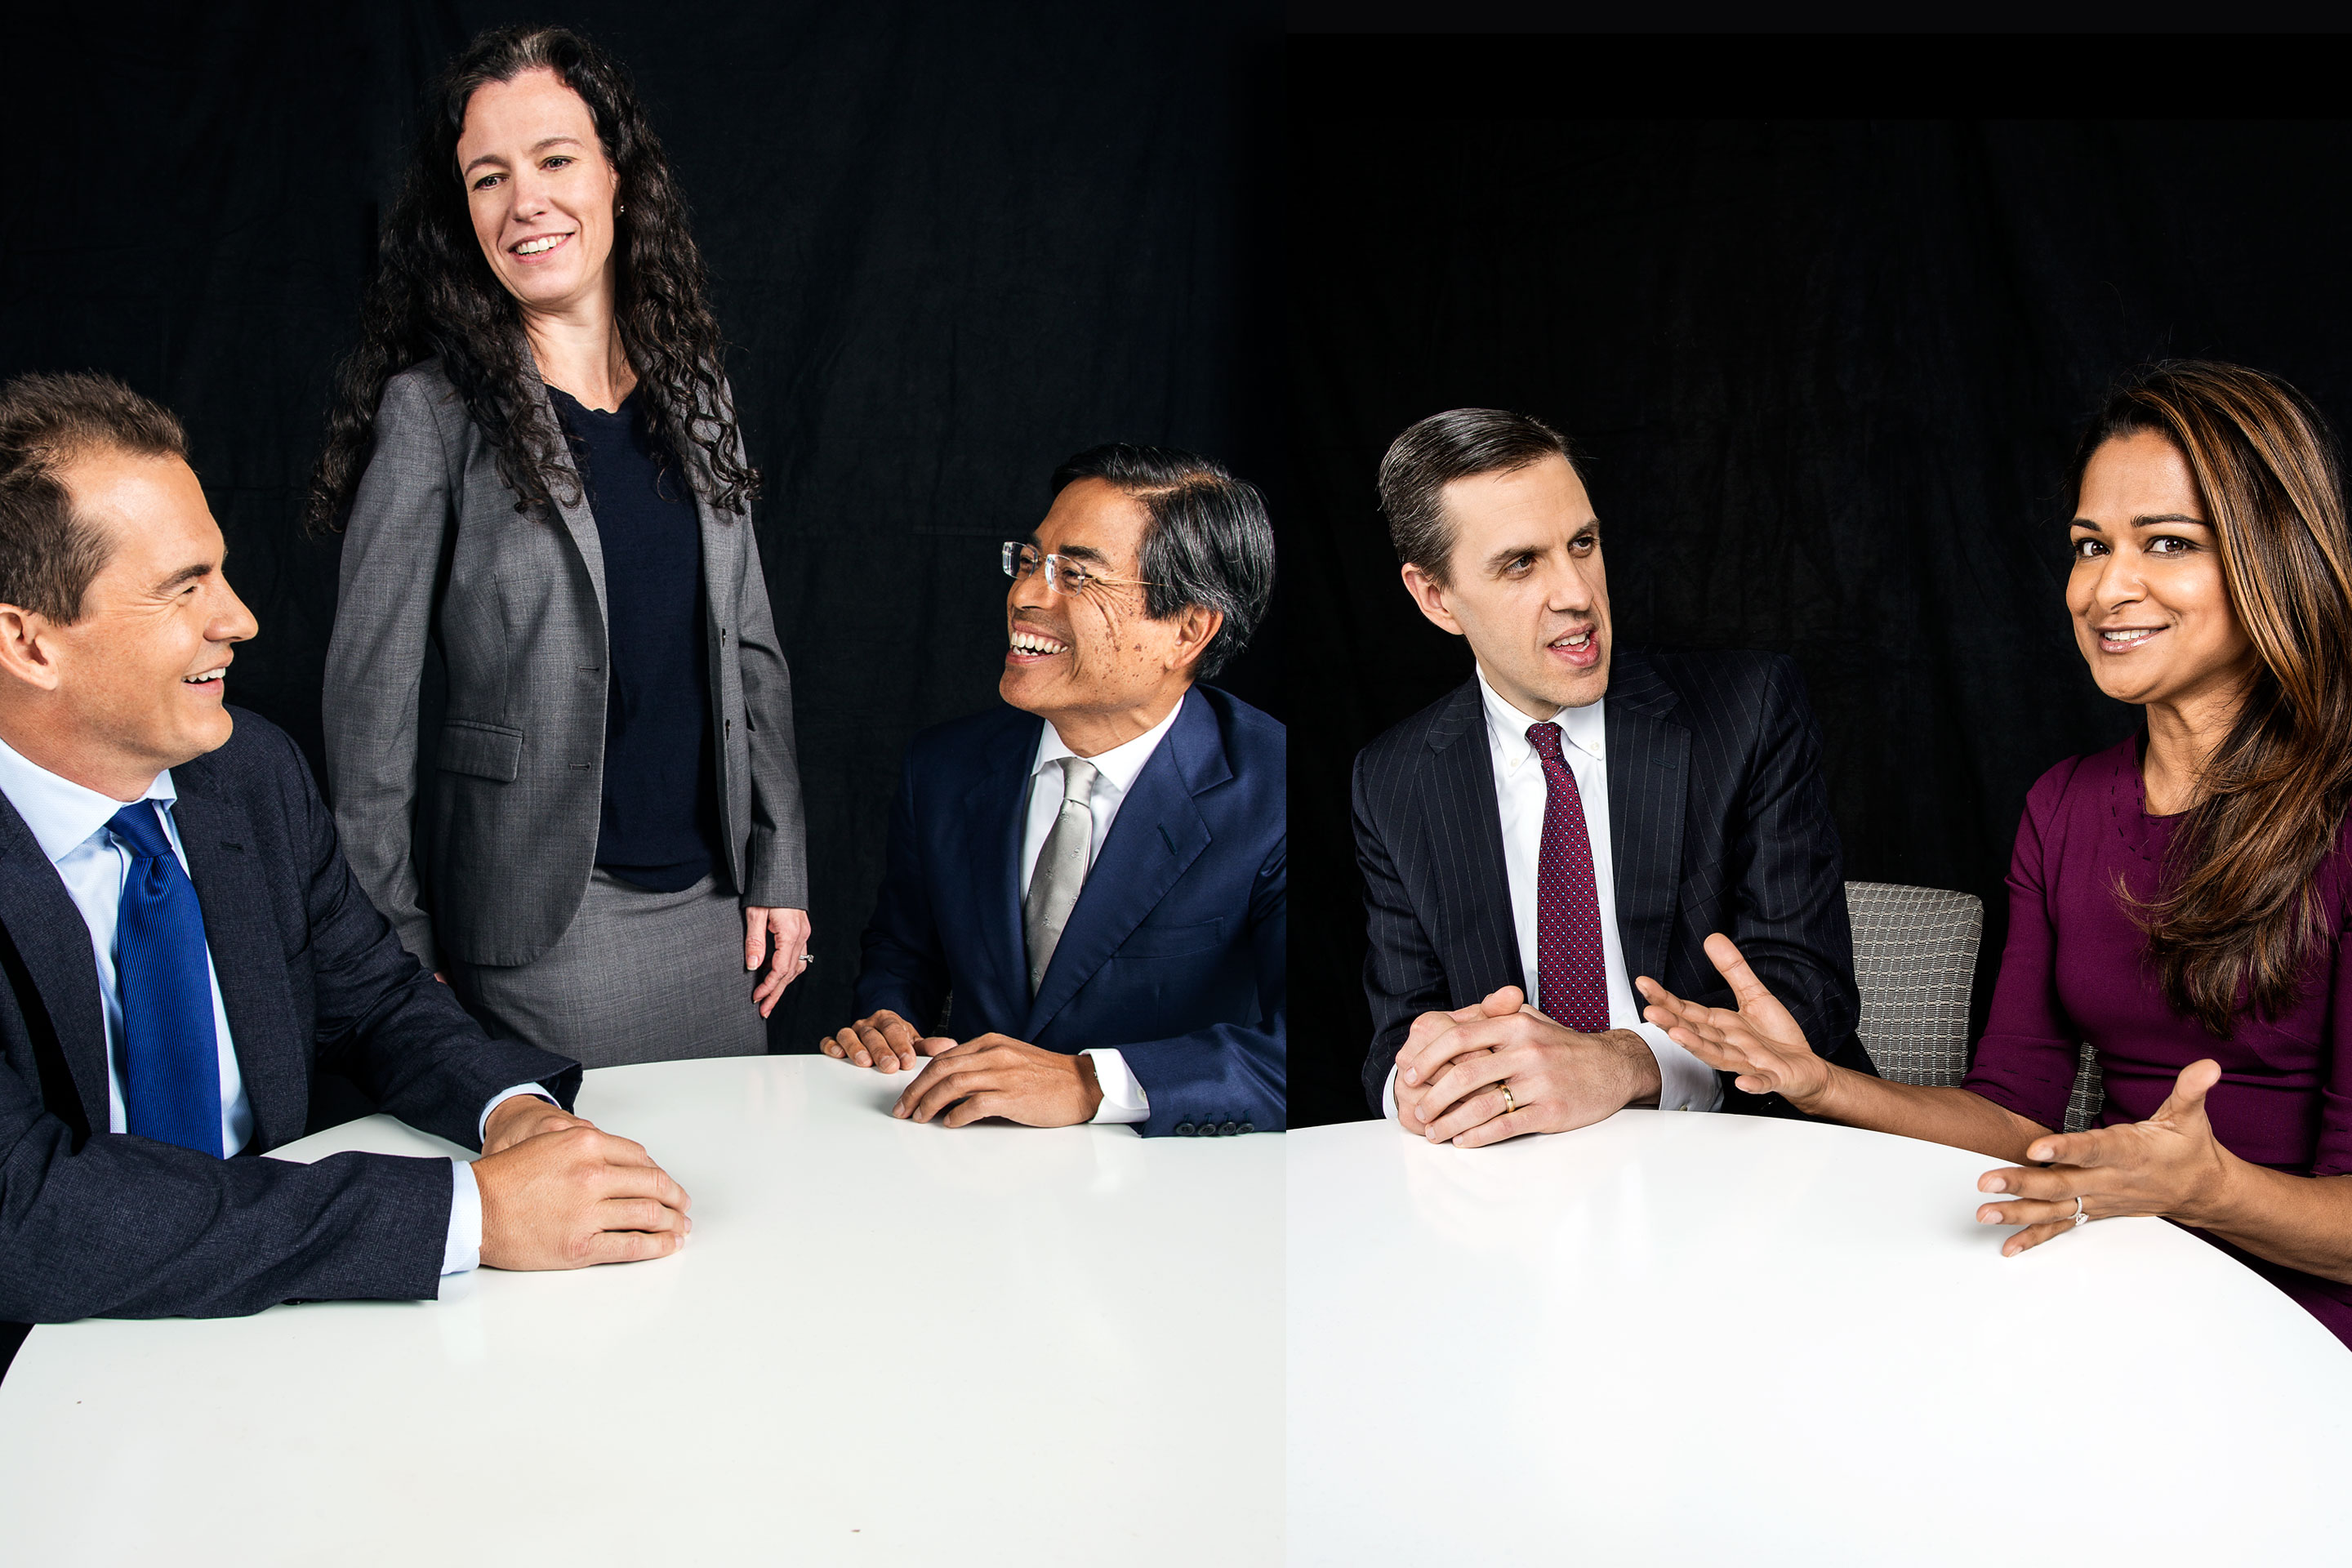 Fotune's 2018 Investors Roundtable, from left, includes: Byron Detter, Kera Van Valen; Dan Chung, David Giroux and Savita Subramanian.